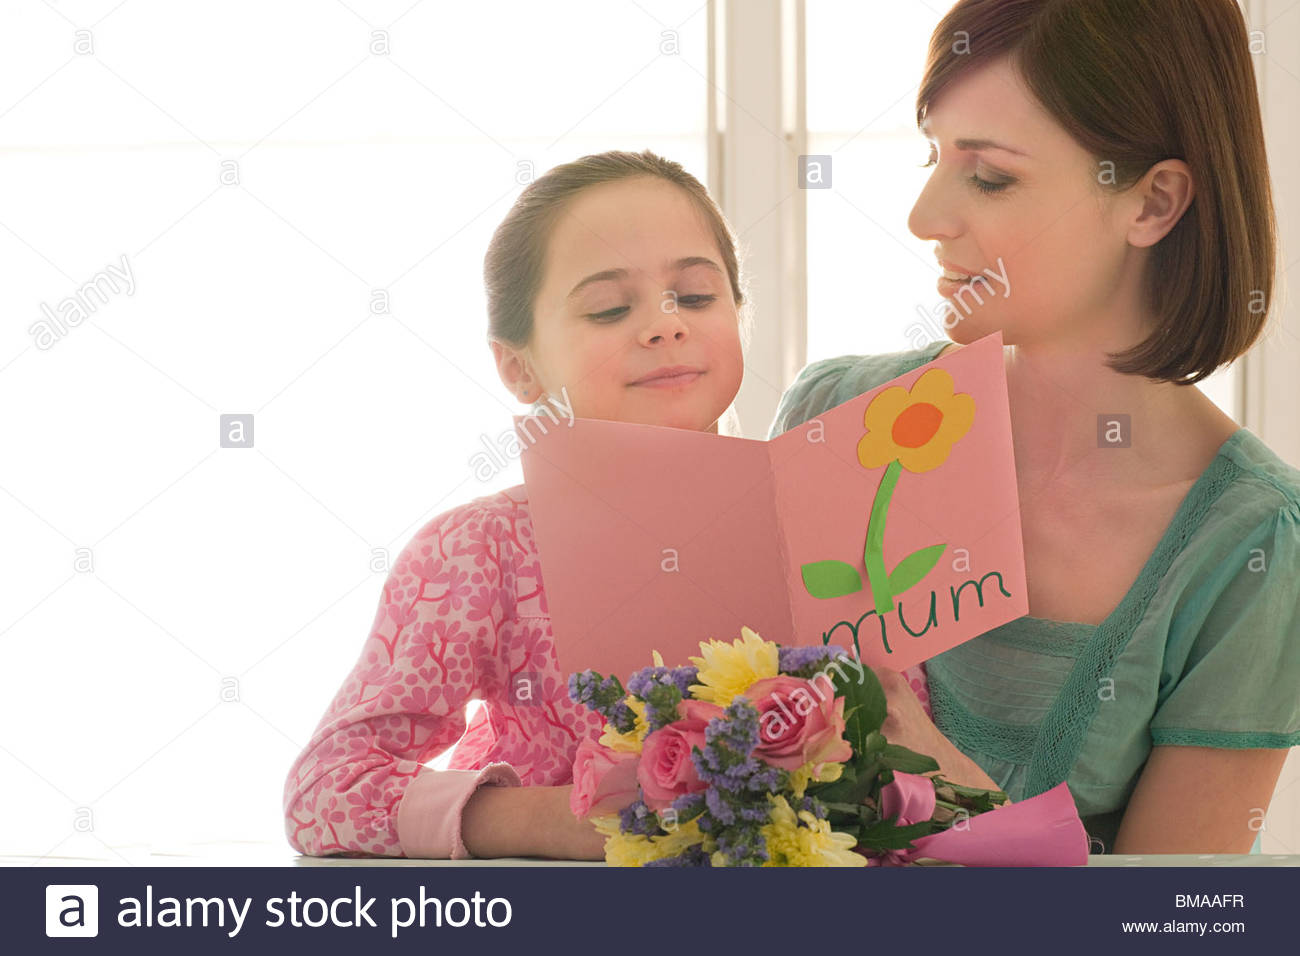 Young girl giving Mothering Sunday card - Stock Image